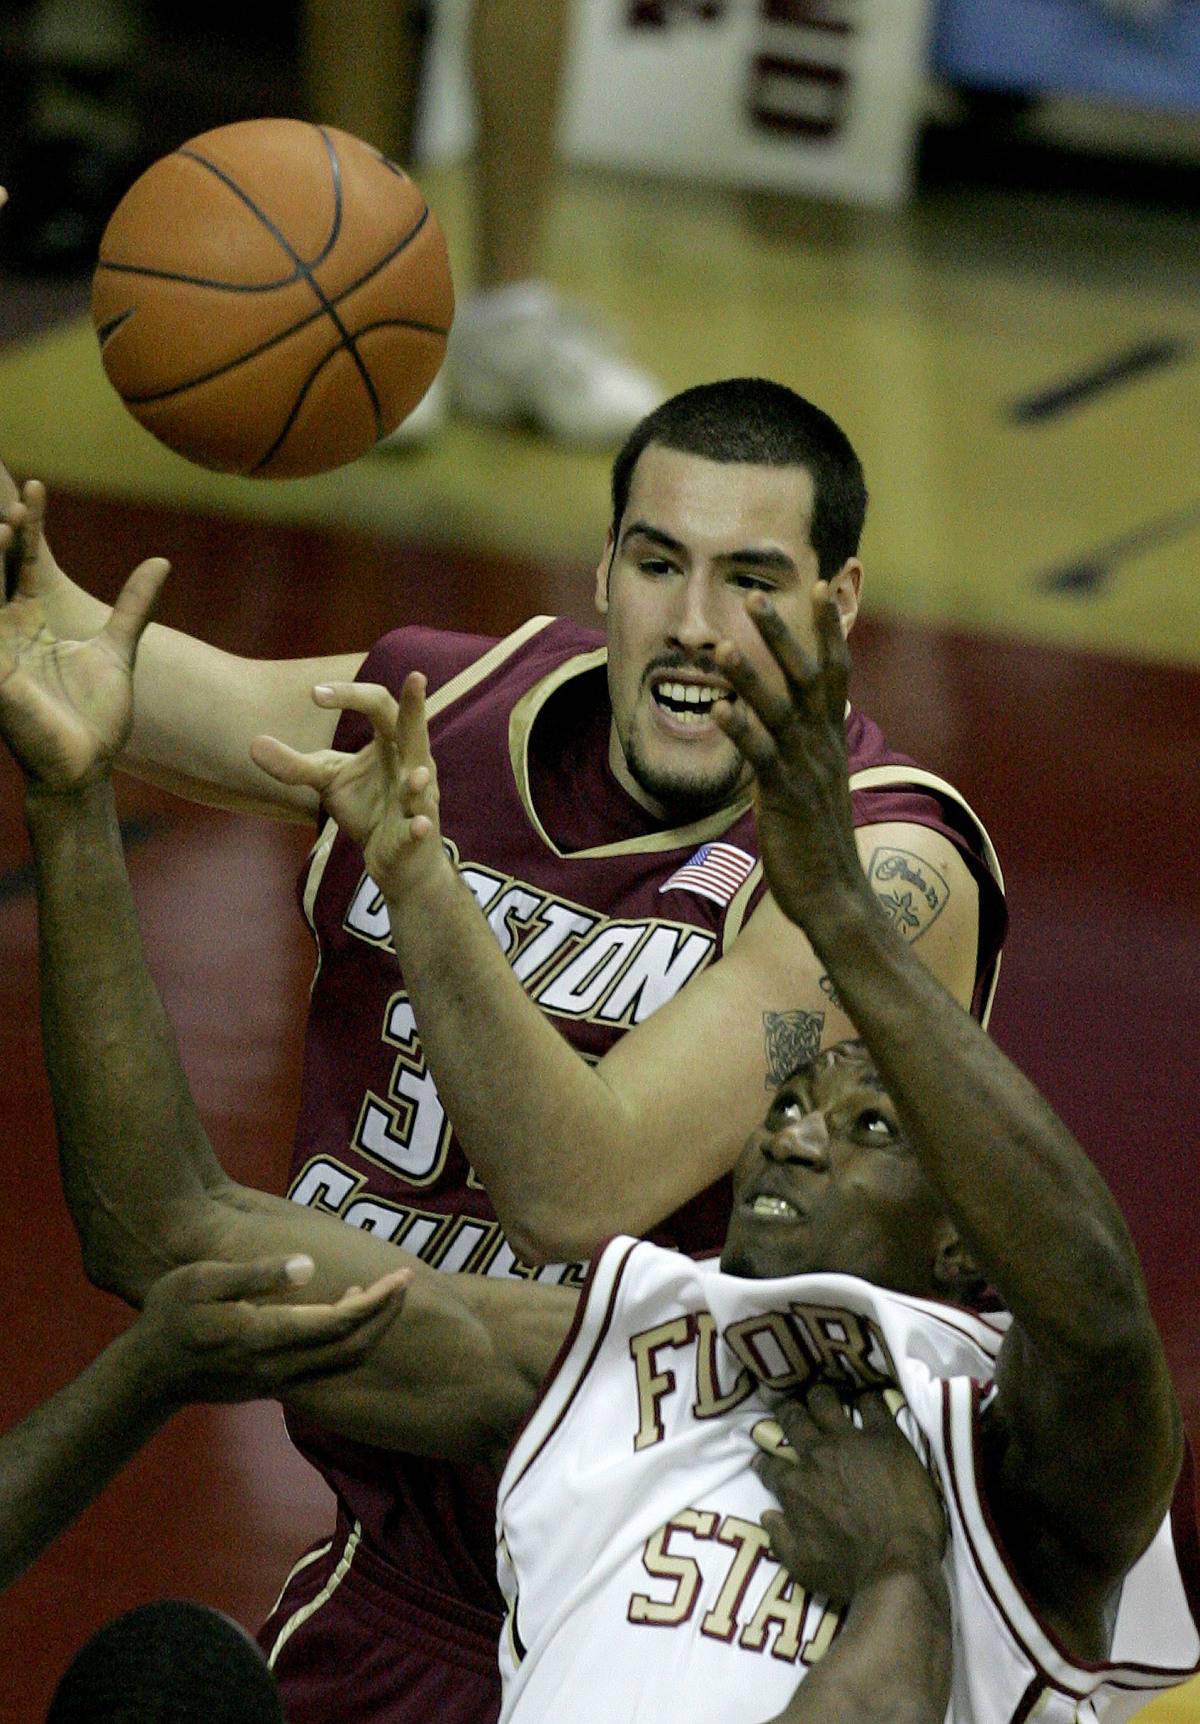 Boston College's John Oates, top, fouls Florida State's Uche Echefu while battling for a second-half rebound during a college basketball game, Sunday, Feb. 11, 2007, in Tallahassee, Fla.(AP Photo/Phil Coale)